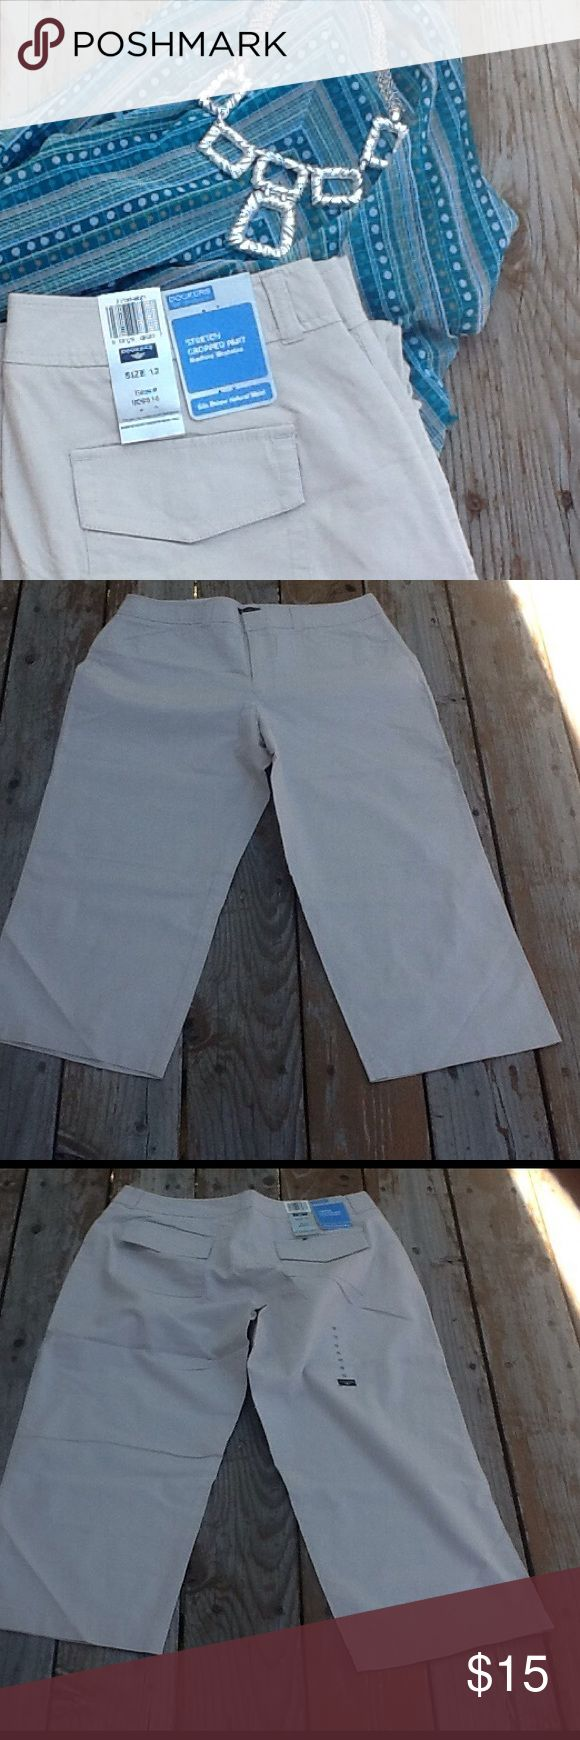 """NWT CREAM STRETCH CAPRIS DOCKERS RESORT CASUAL These stretch cream capris designed by """"Dockers"""" are 98% cotton 2% spandex.  Perfect for spring/summer weather and resort casual wear.  Could also be worn in the fall with your favorite tall boots. Dockers Pants Ankle & Cropped"""